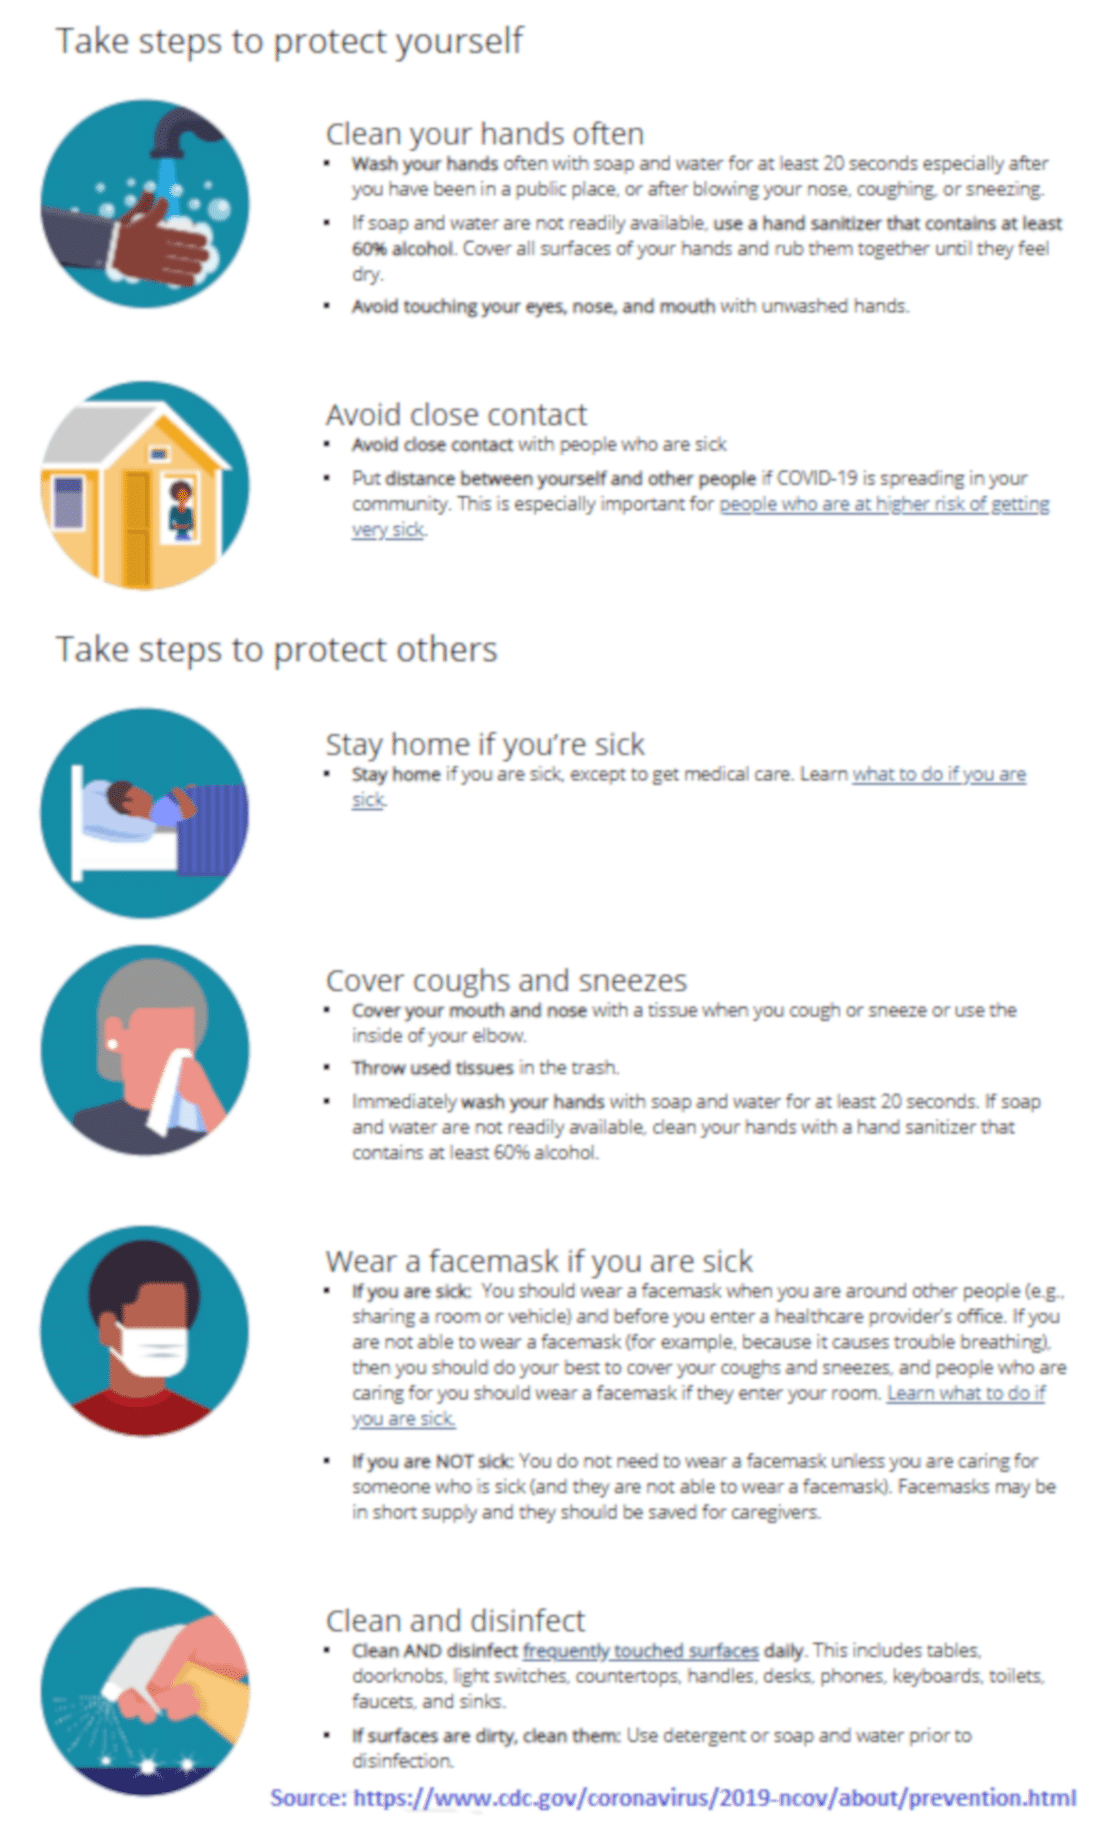 Coronavirus (COVID-19) - Steps To Protect Yourself & Others. Embed this image on your website: